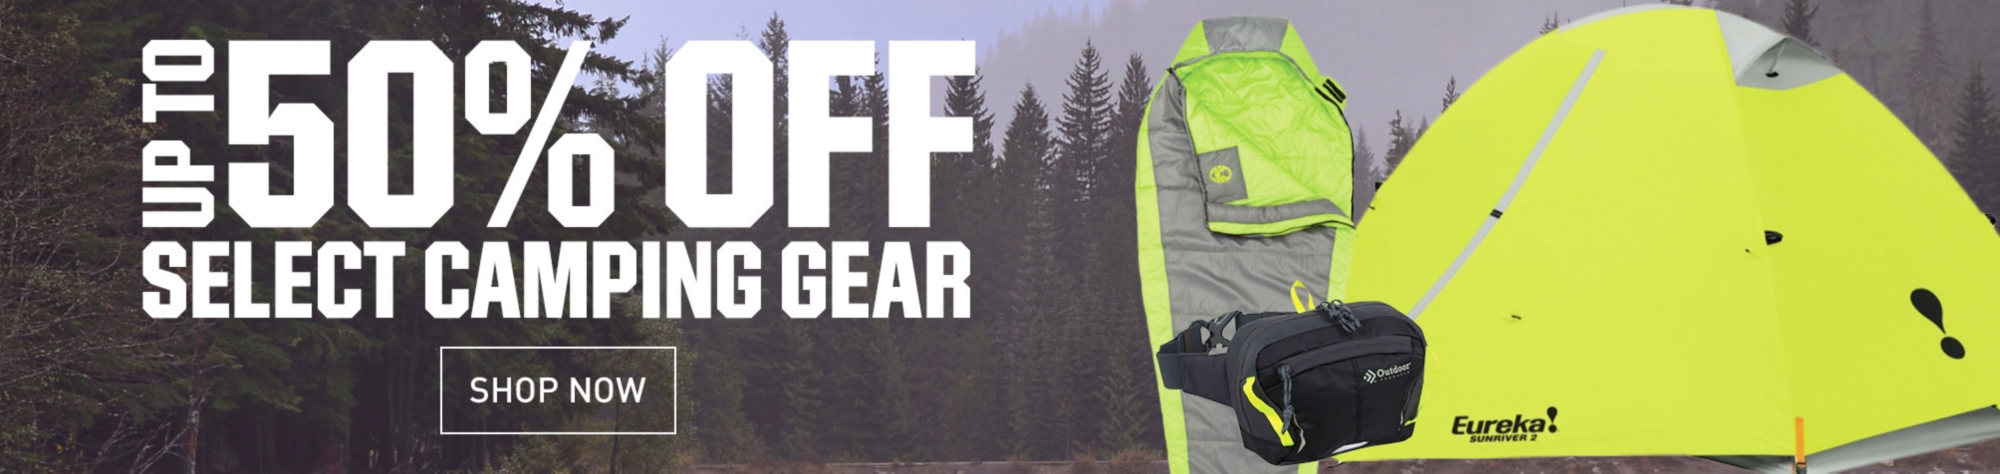 Shop Up To 50% Off Camping Gear